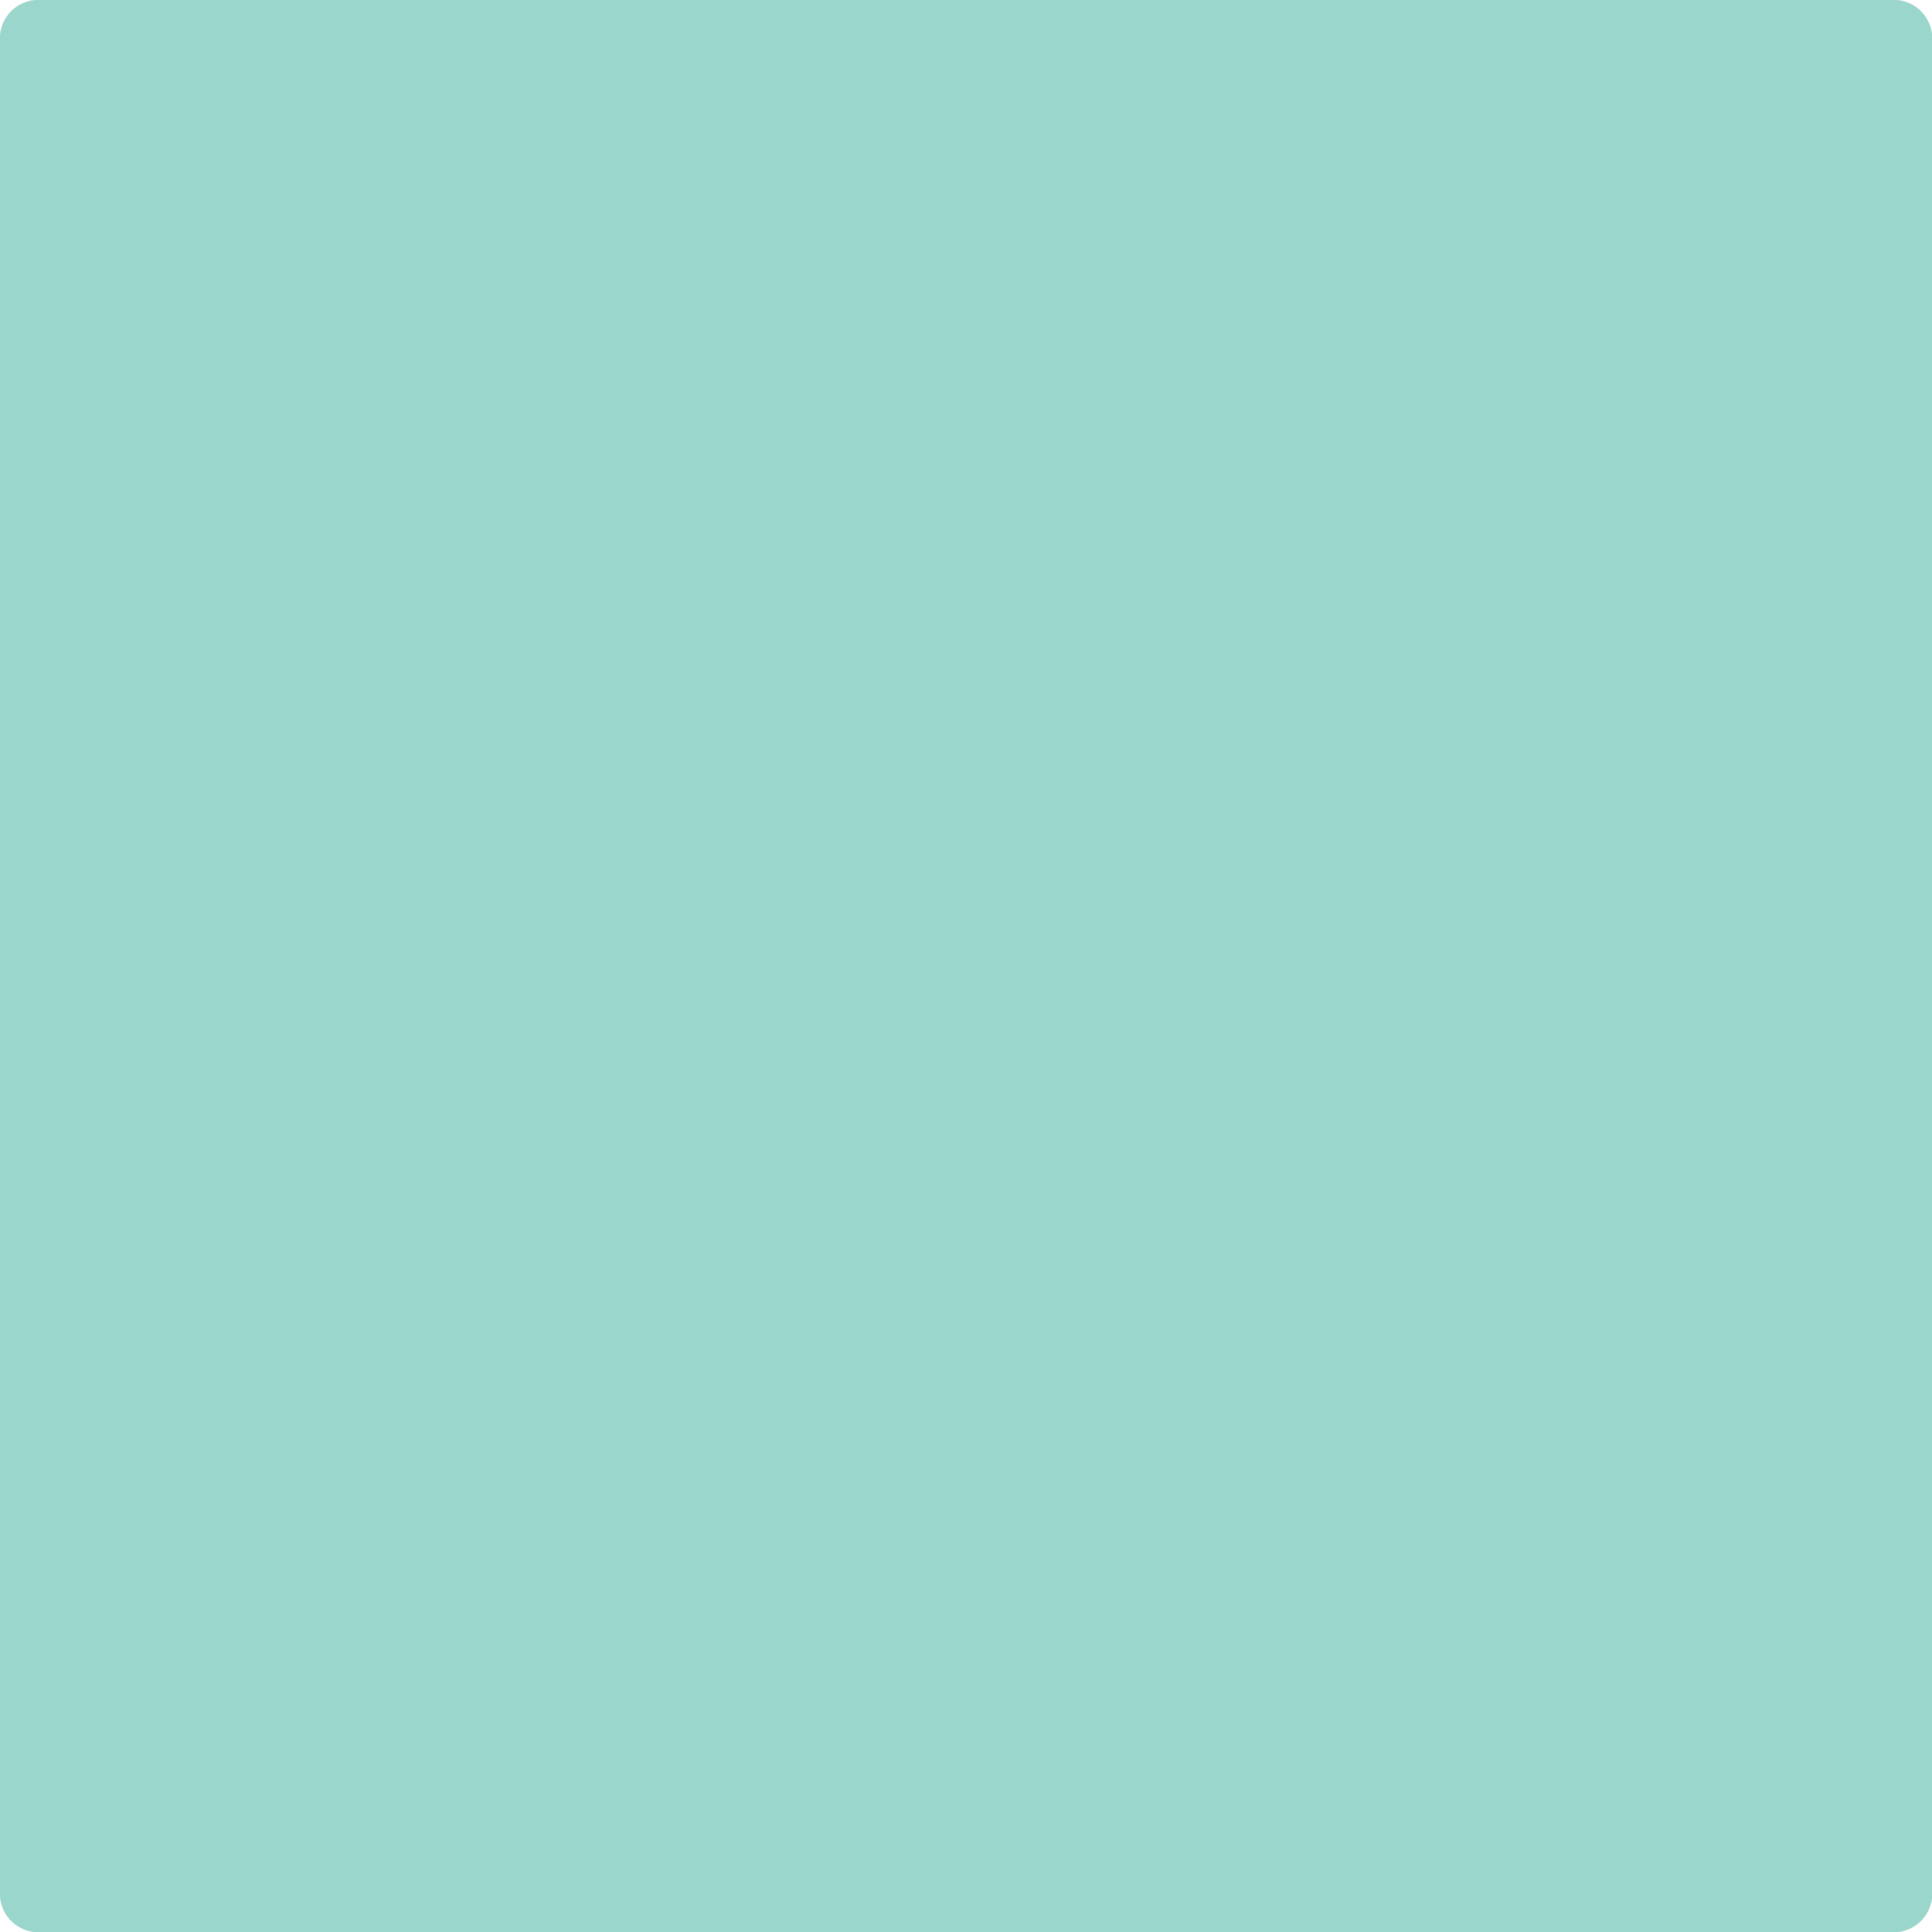 204150 Sea Mist Green in 2020 Solid color backgrounds